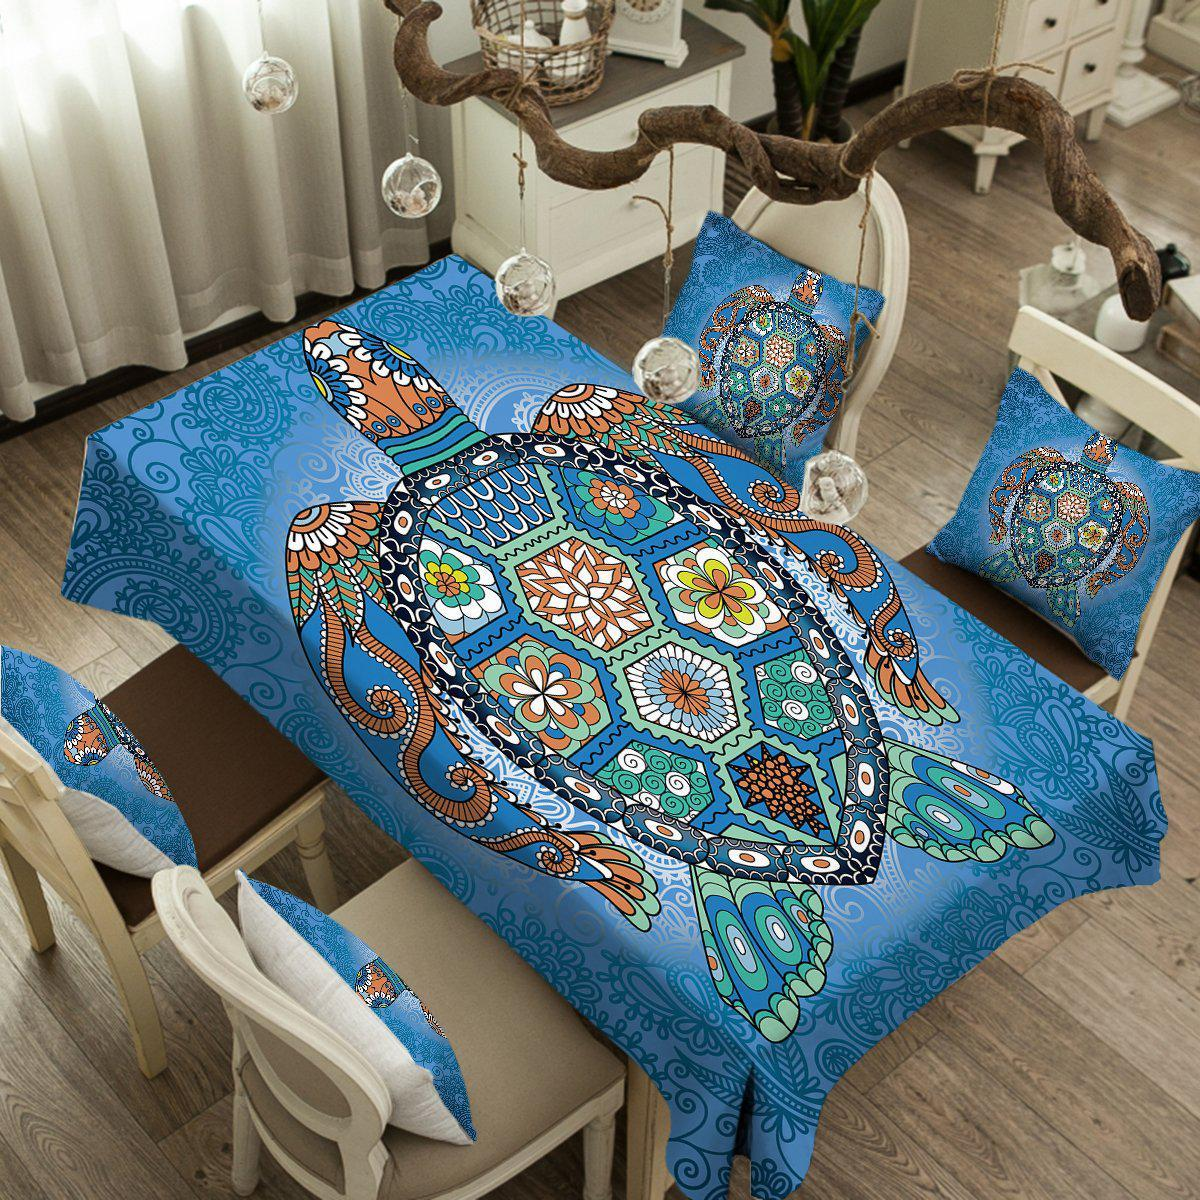 The Turtle Totem Tablecloth-Coastal Passion